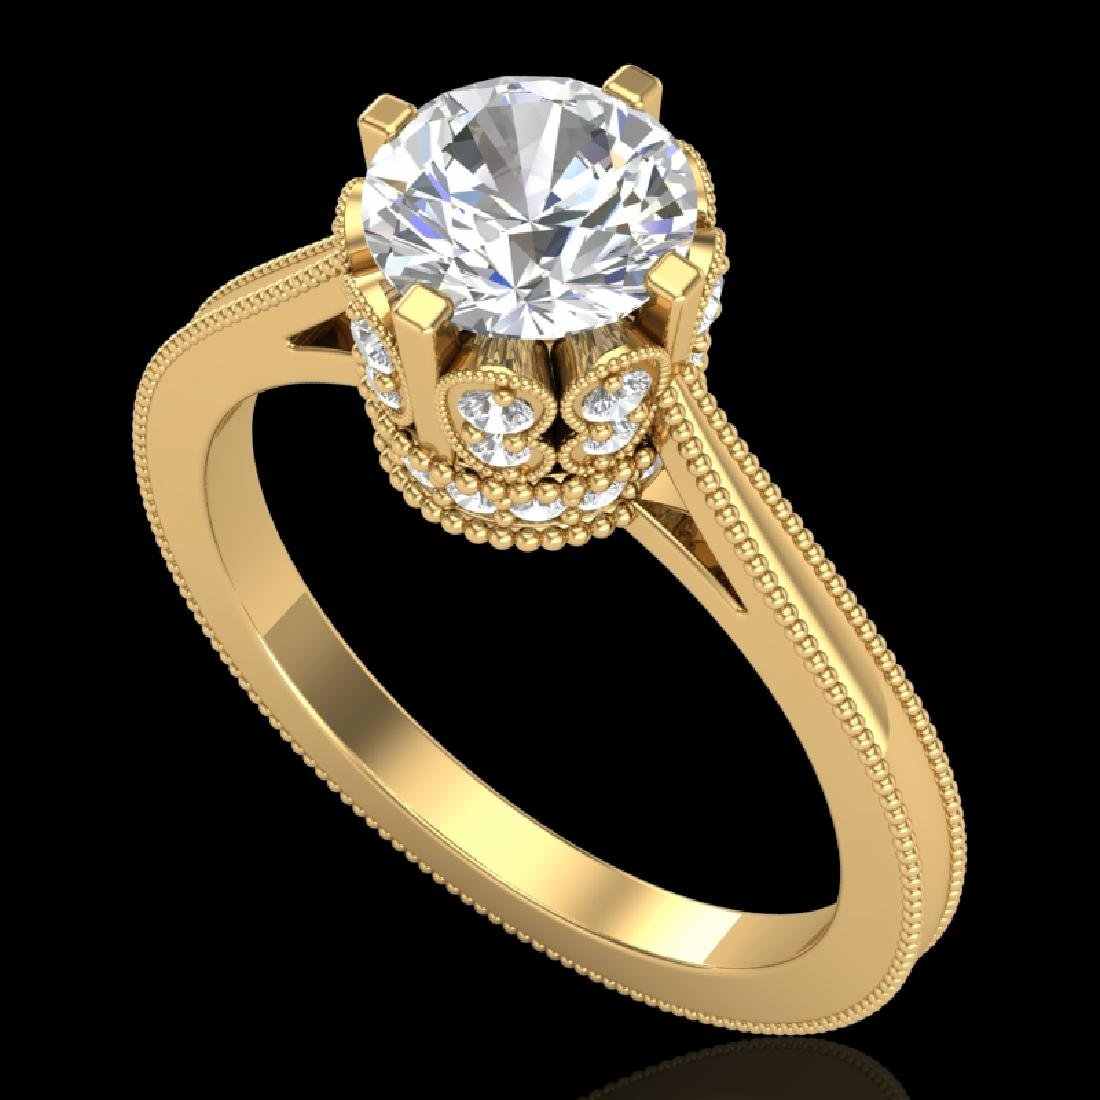 1.5 CTW VS/SI Diamond Art Deco Ring 18K Yellow Gold